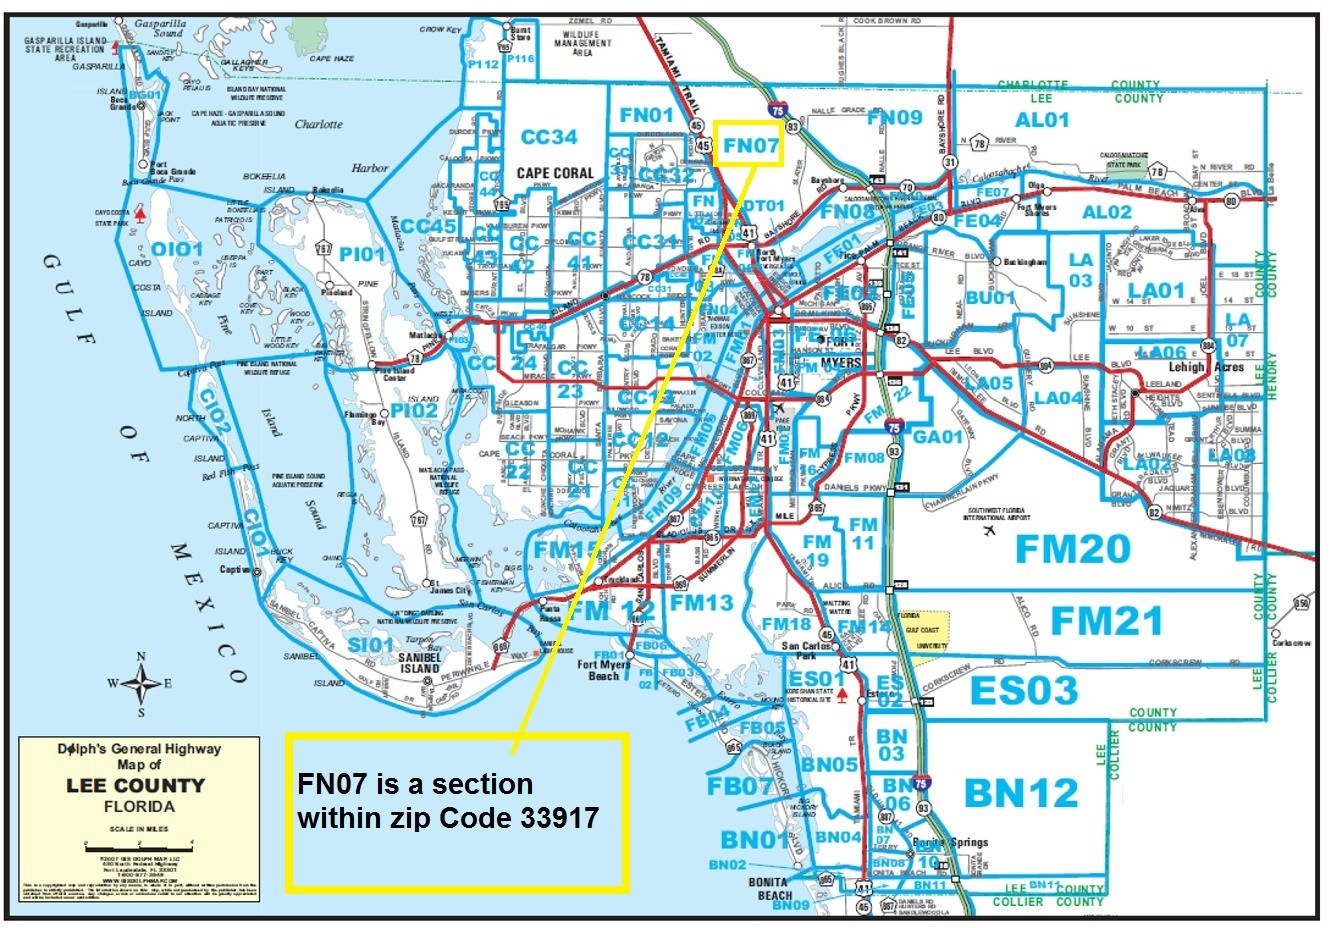 Free Lee County Florida Realtor Map - Sw Florida Real Estate Resources - Collier County Florida Map